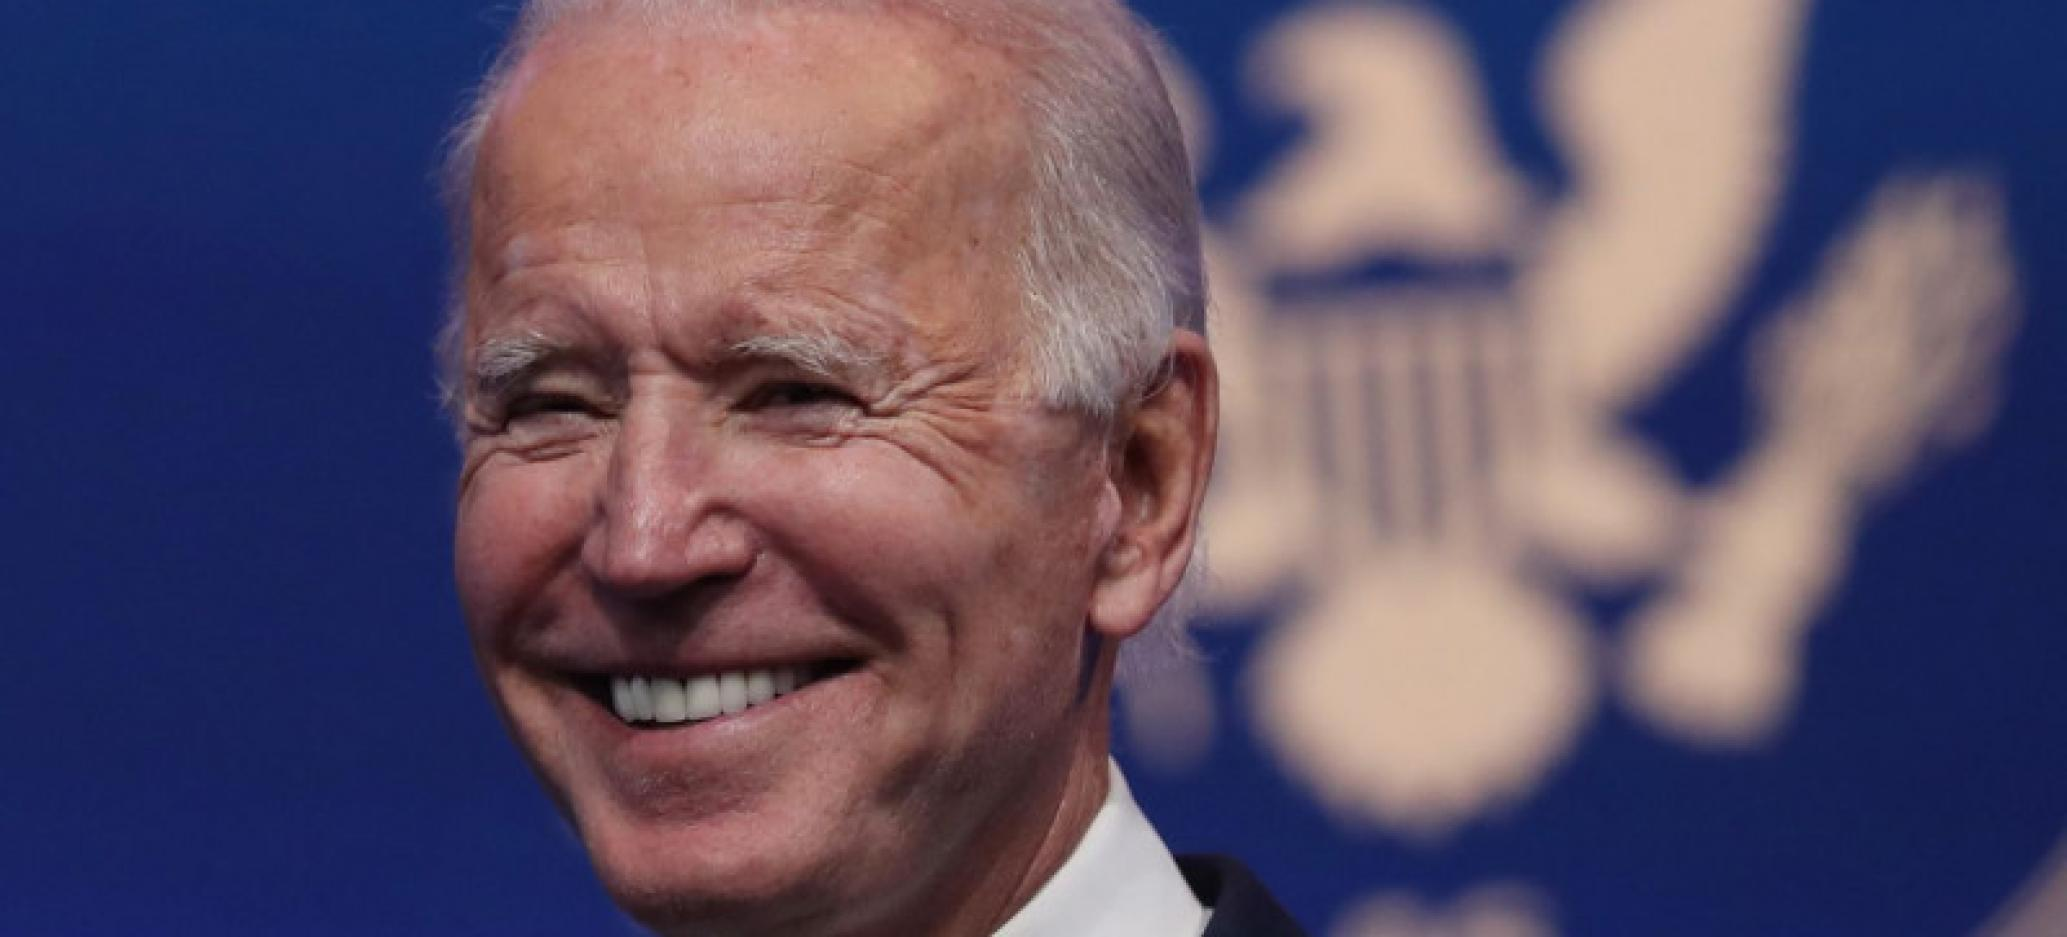 Biden is Supporting Amazon Workers in Alabama for Their Worker Union Vote